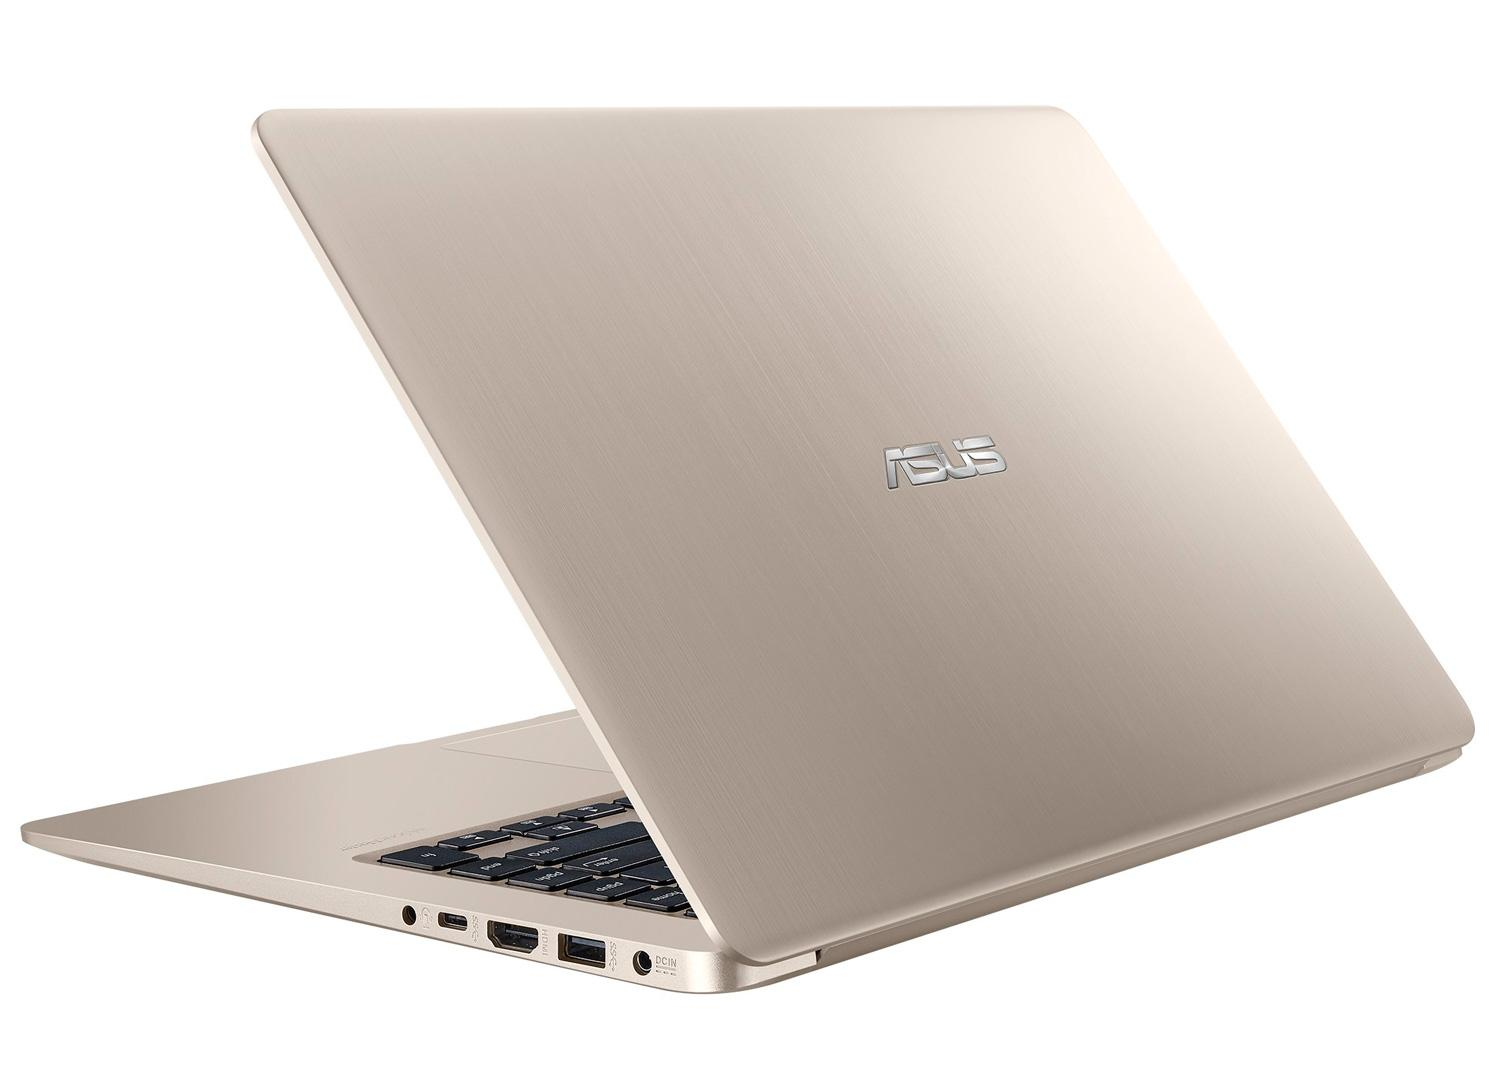 Ordinateur portable Asus VivoBook S510UQ-BQ166T Gold - SSD - photo 2